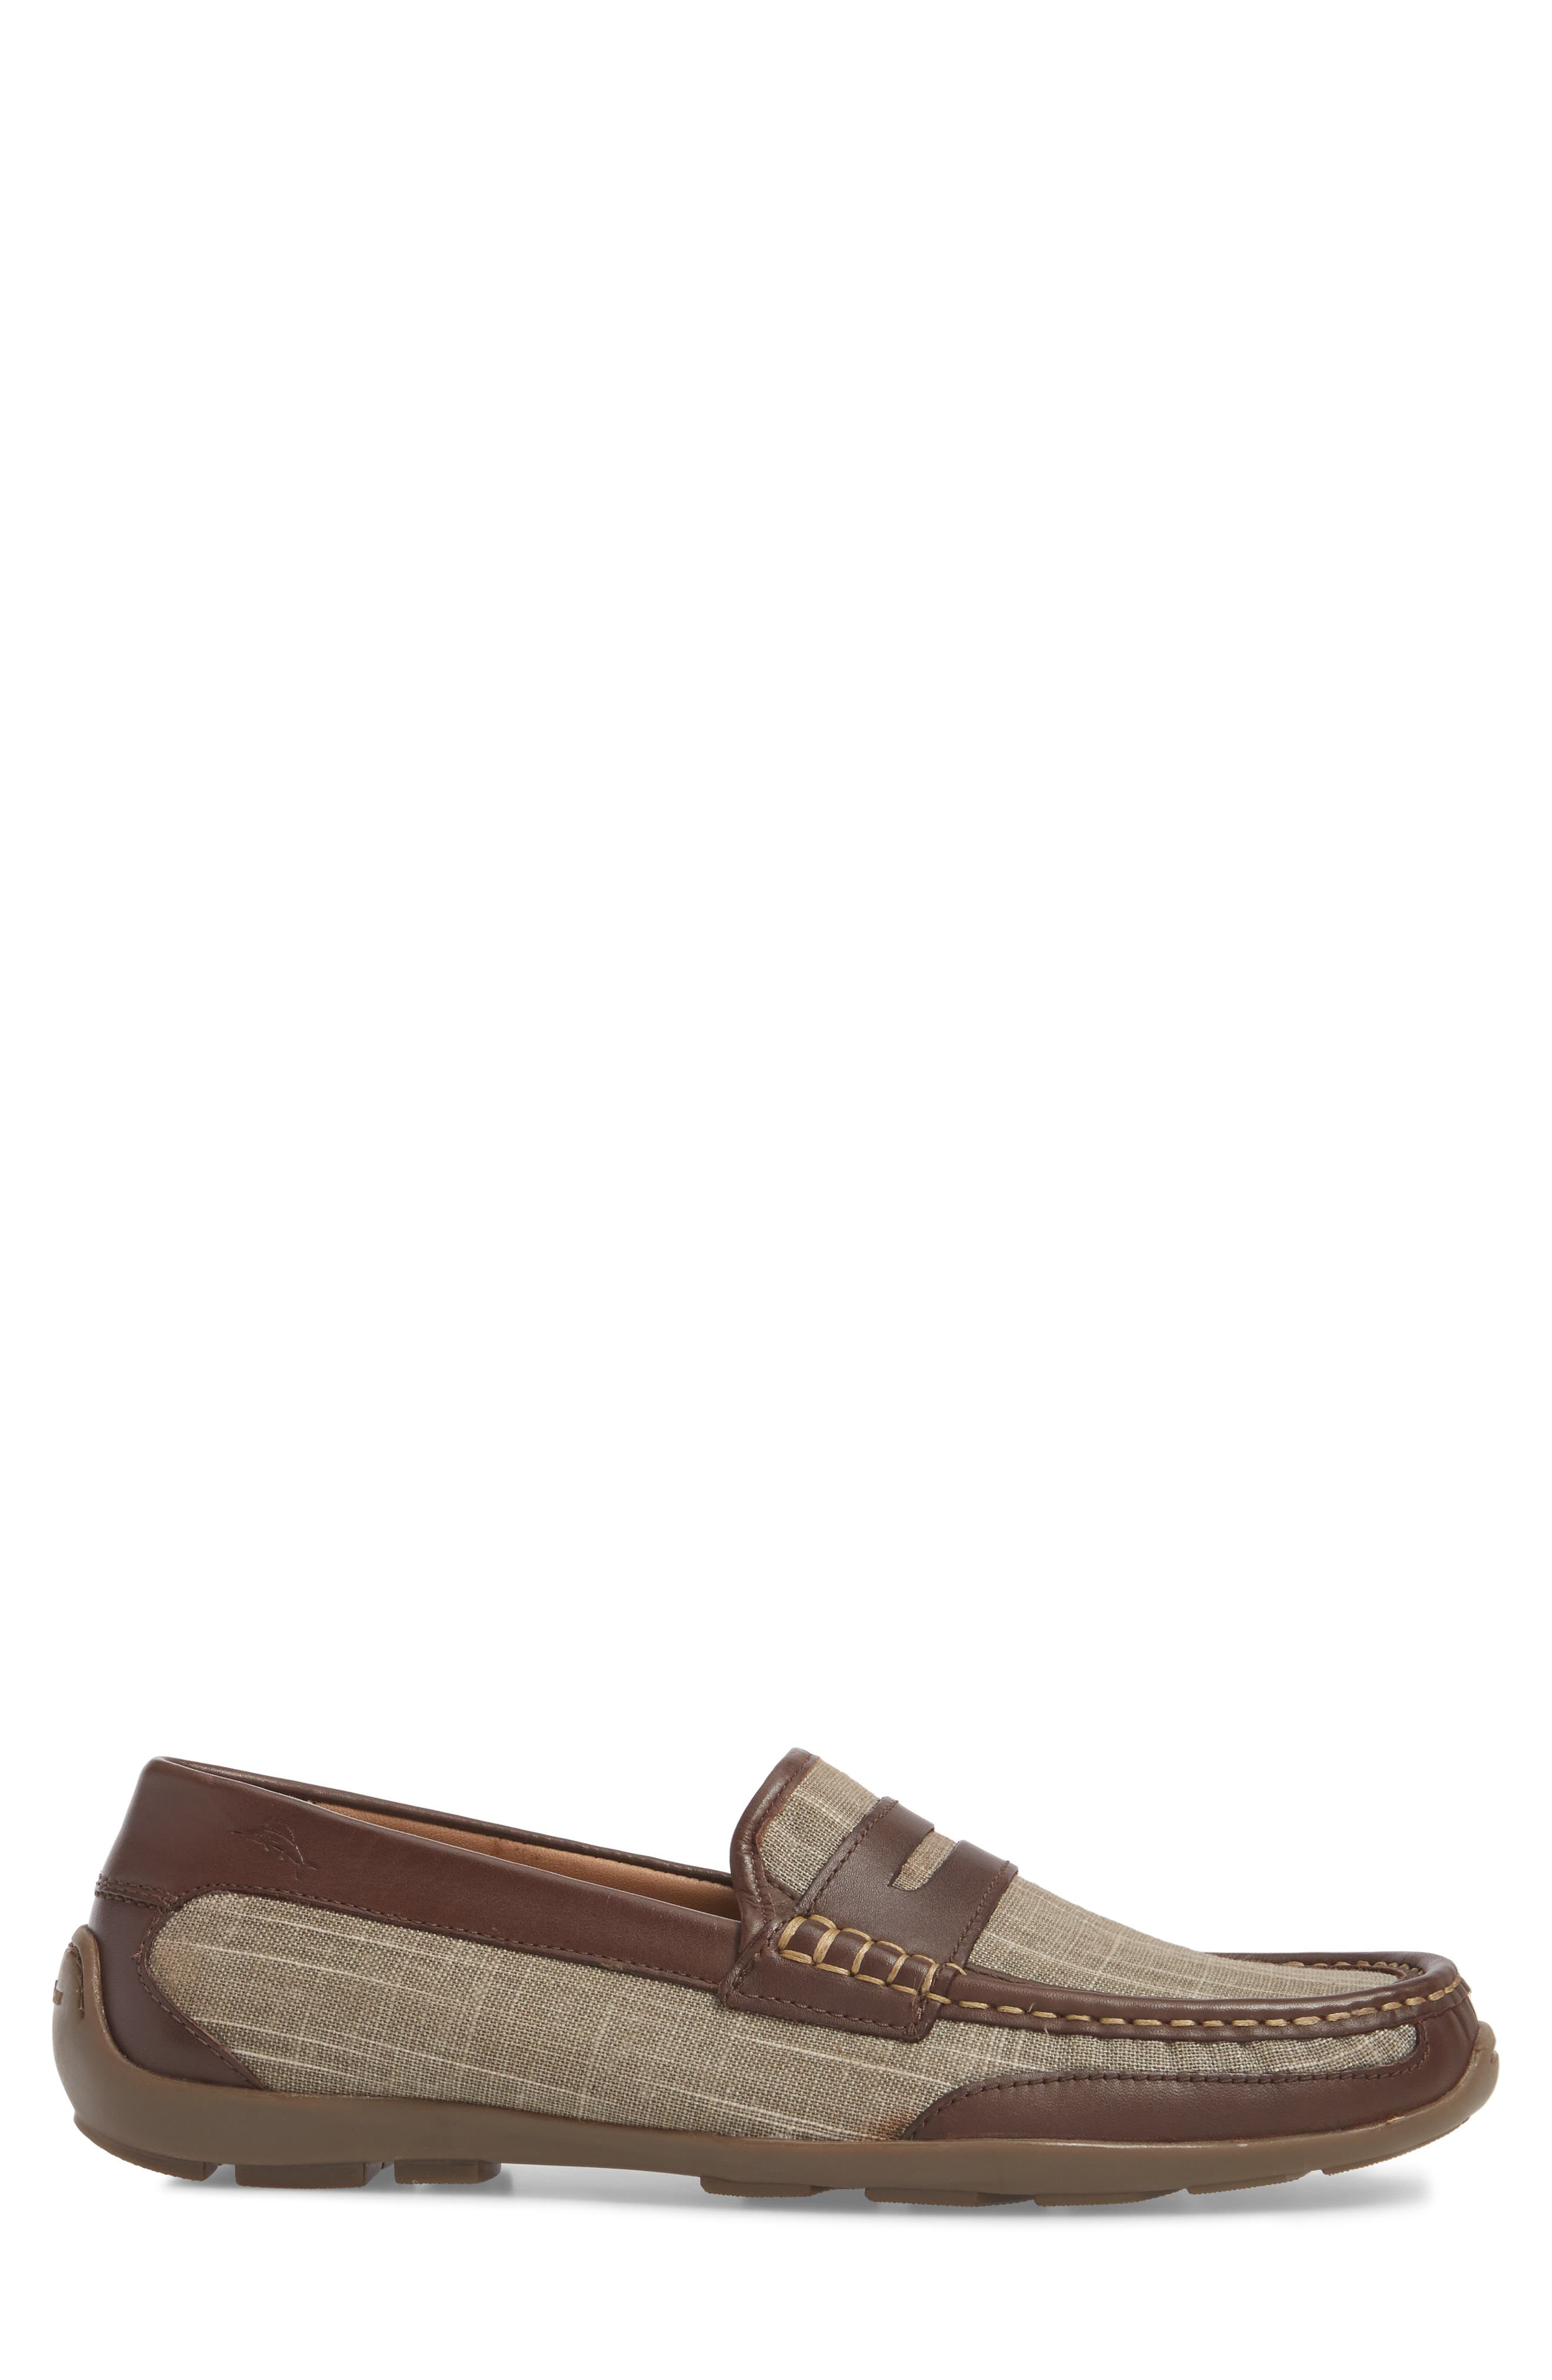 Taza Fronds Driving Shoe,                             Alternate thumbnail 3, color,                             BROWN/ OLIVE LEATHER/ LINEN